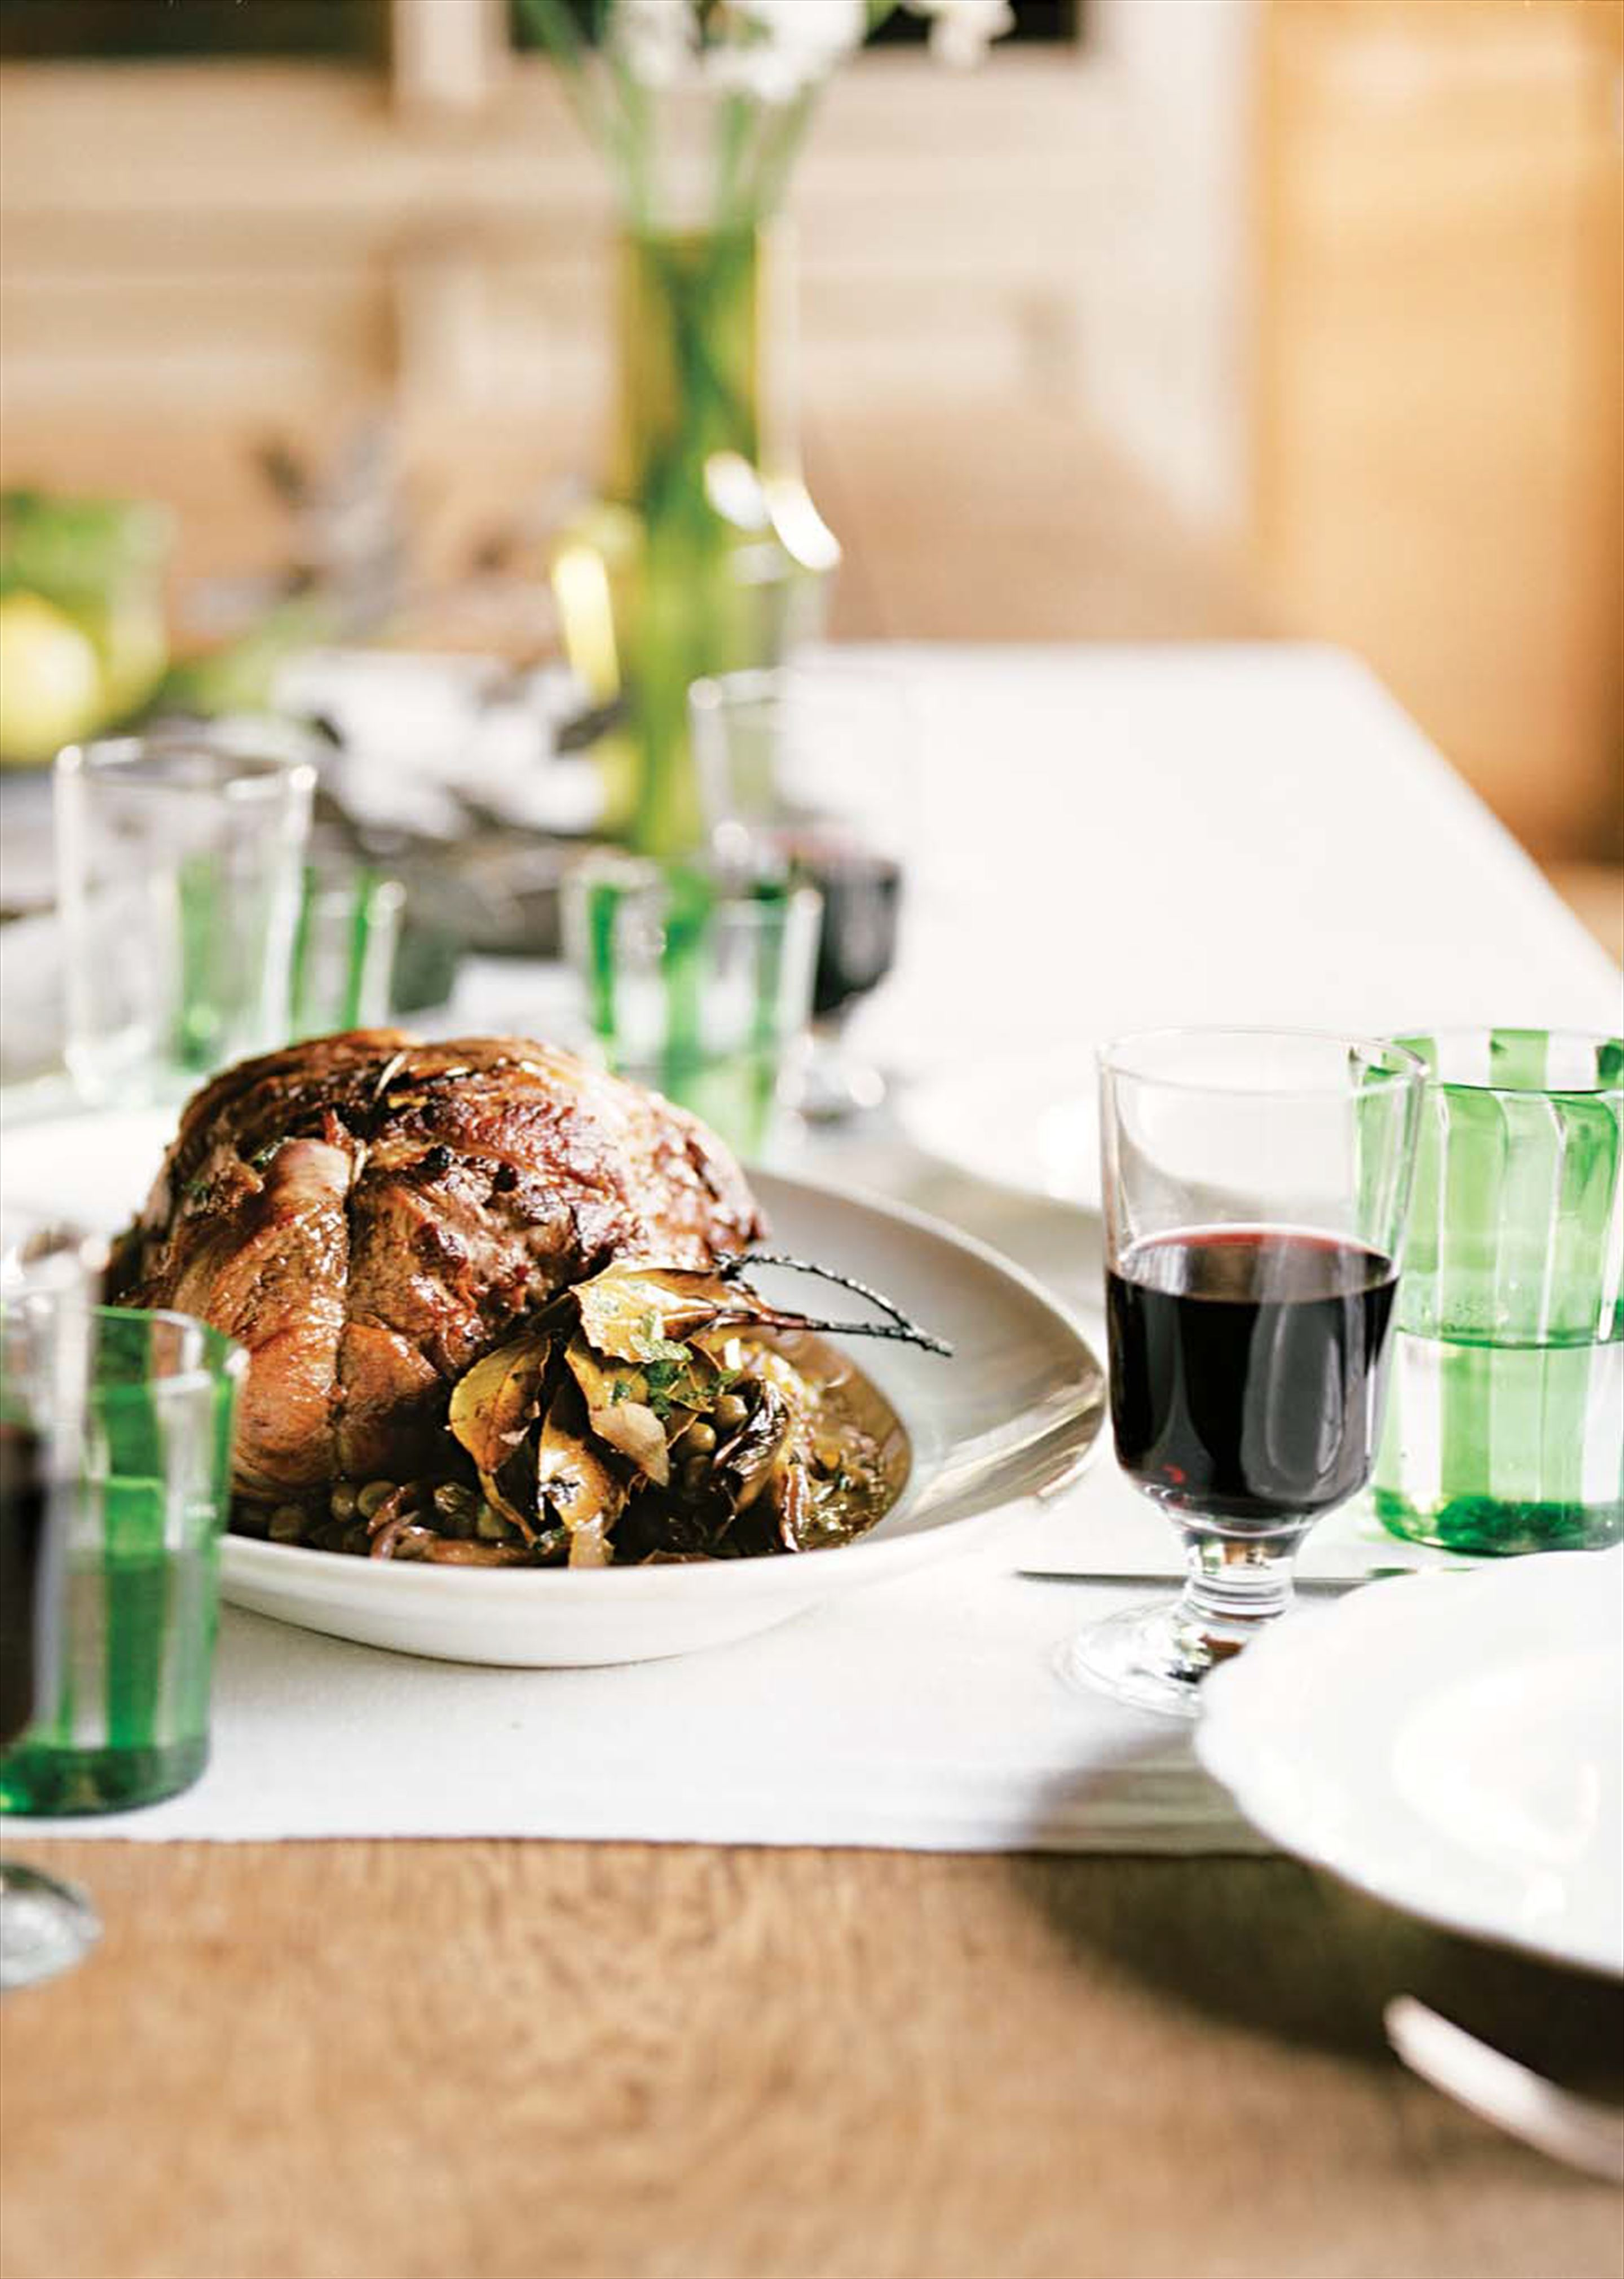 Slow-cooked lamb with artichokes, peas and mint